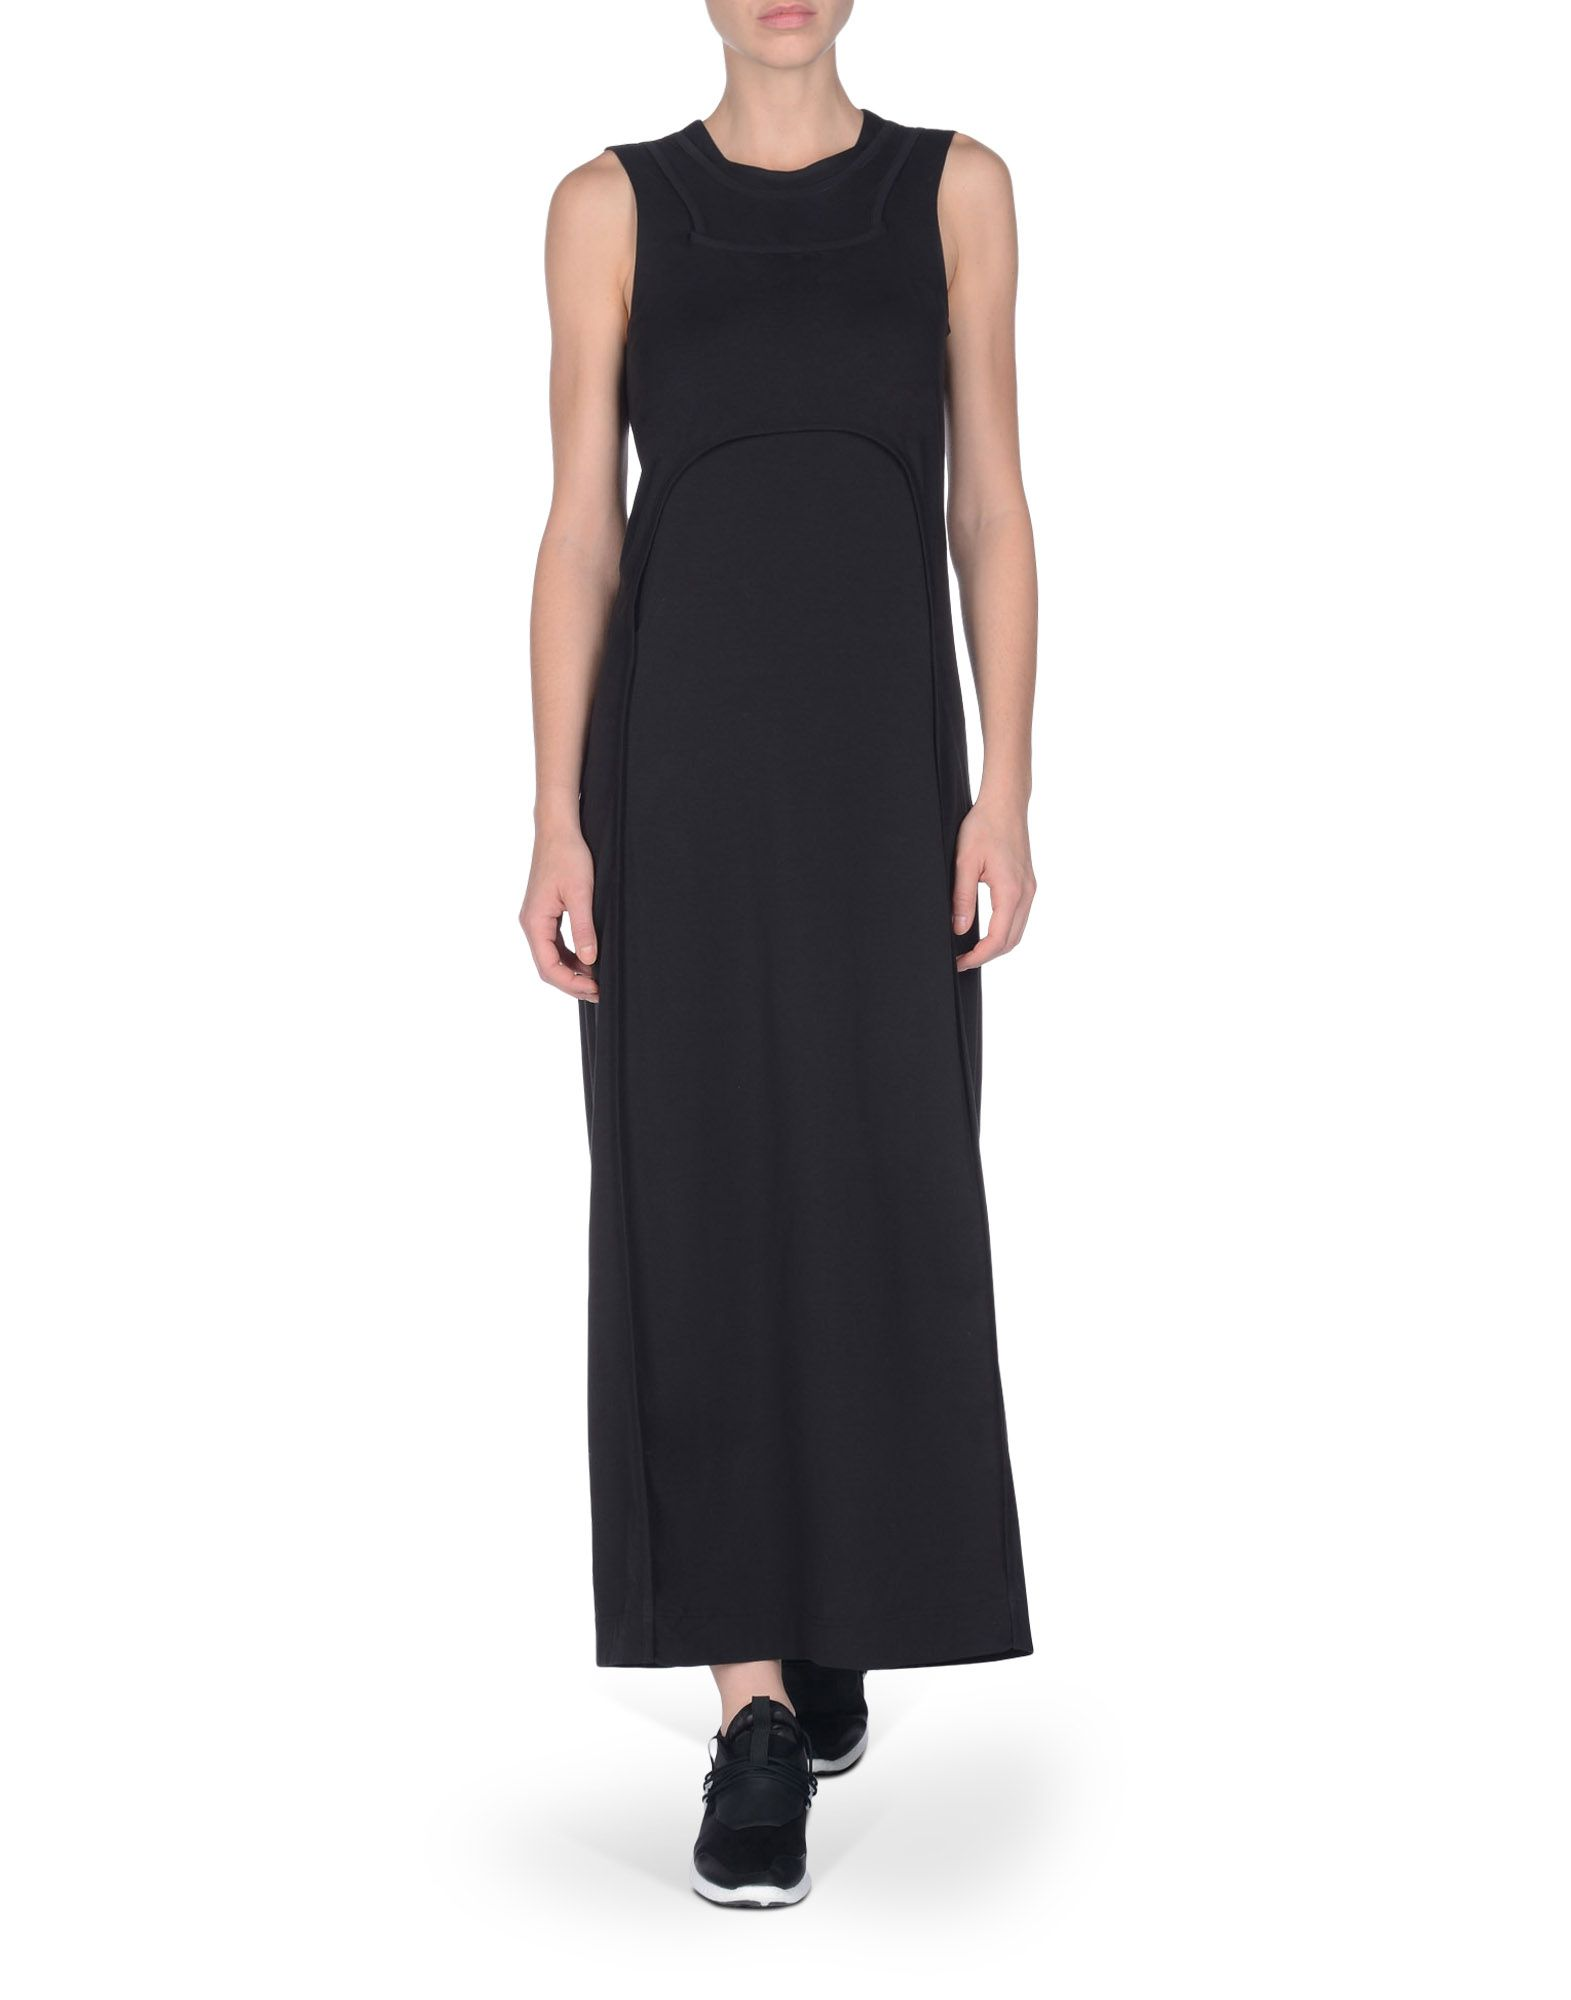 Y-3 JERSEY DRESS DRESSES & SKIRTS woman Y-3 adidas